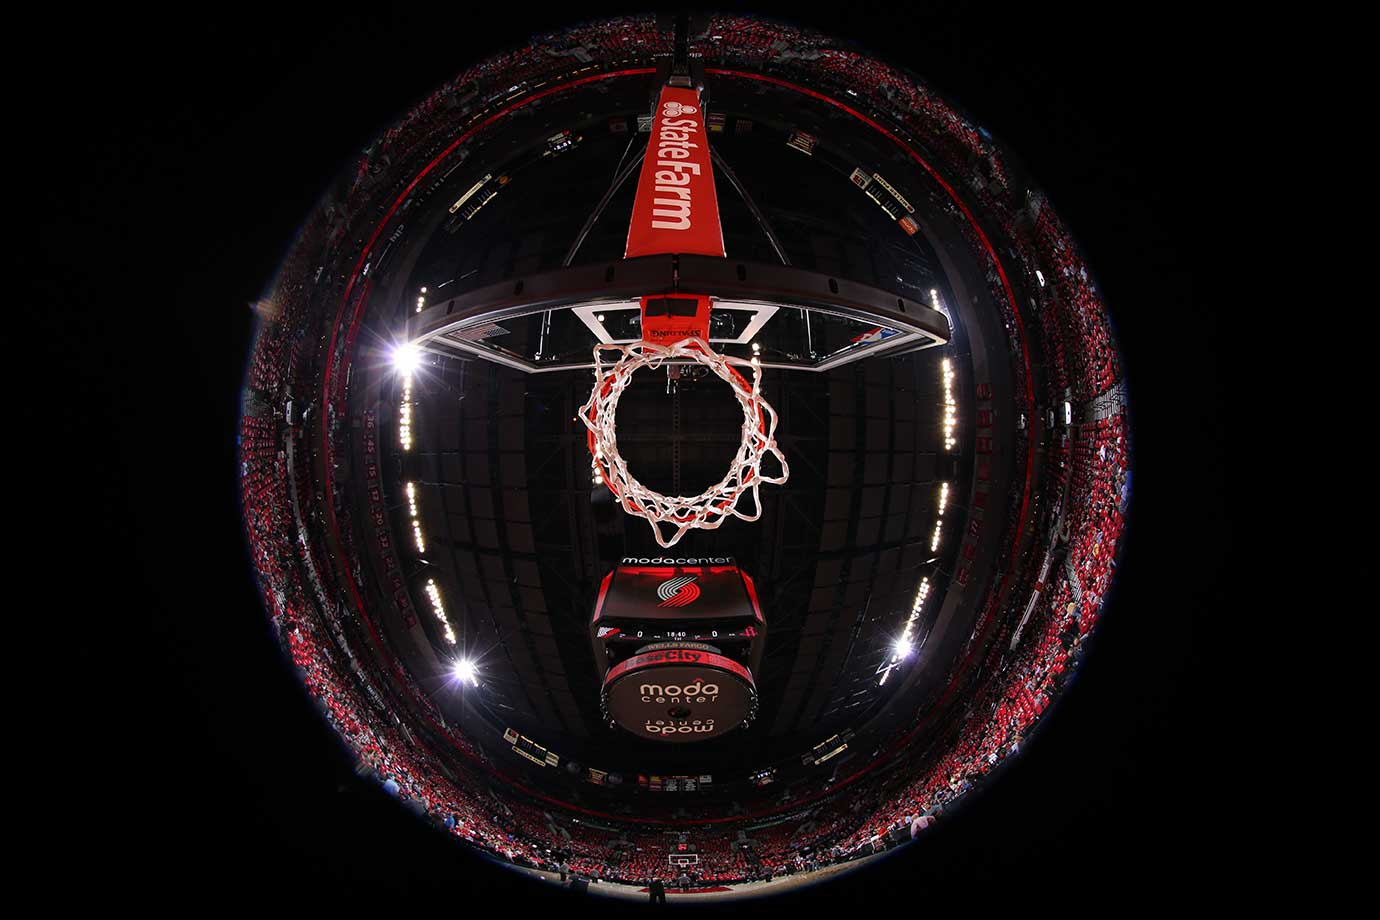 The Moda Center arena in Portland before the Trail Blazers played the Houston Rockets.